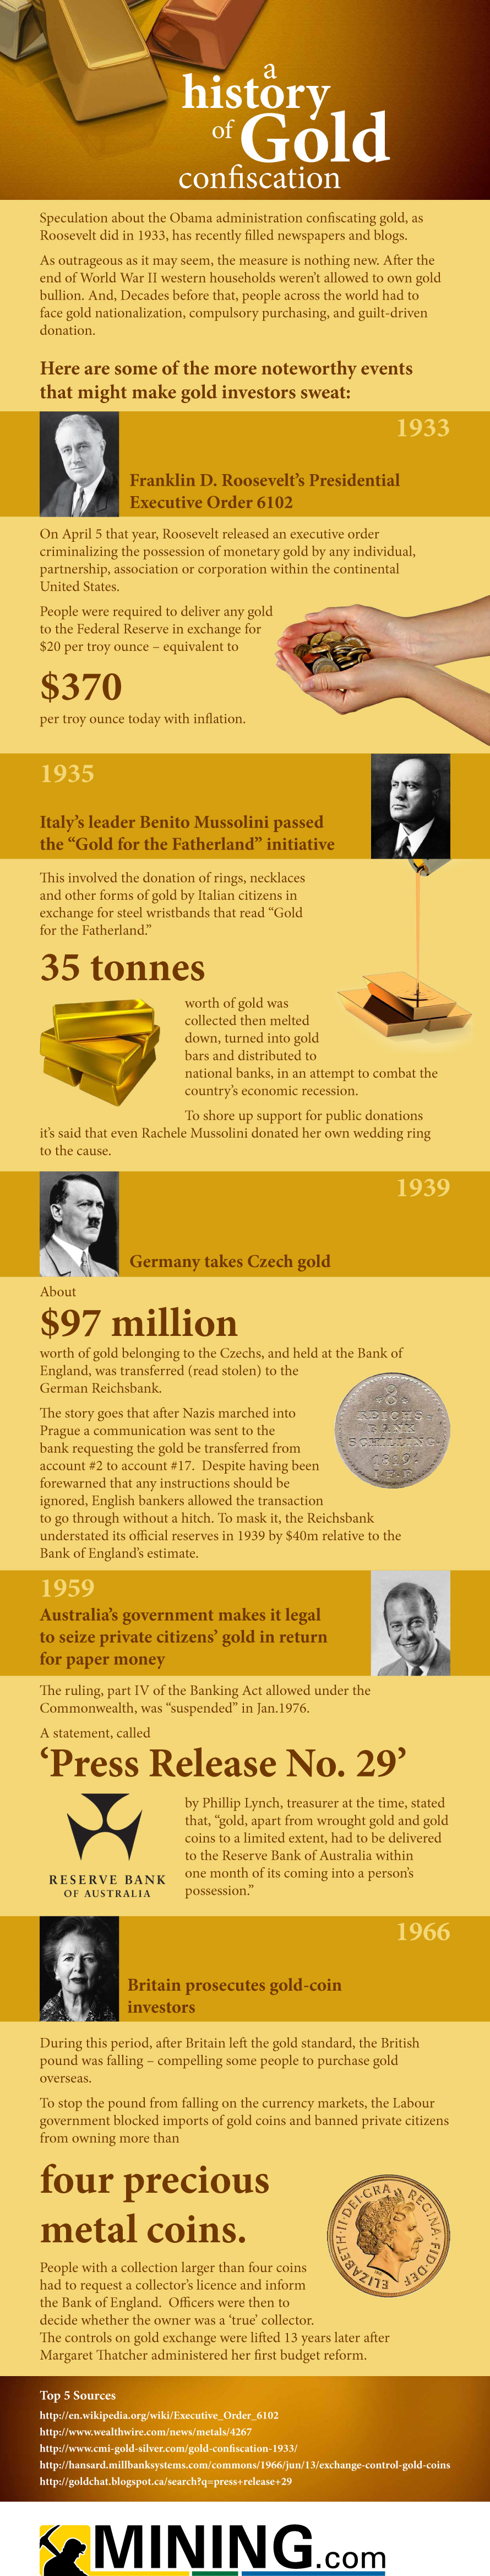 A History of Gold Confiscation